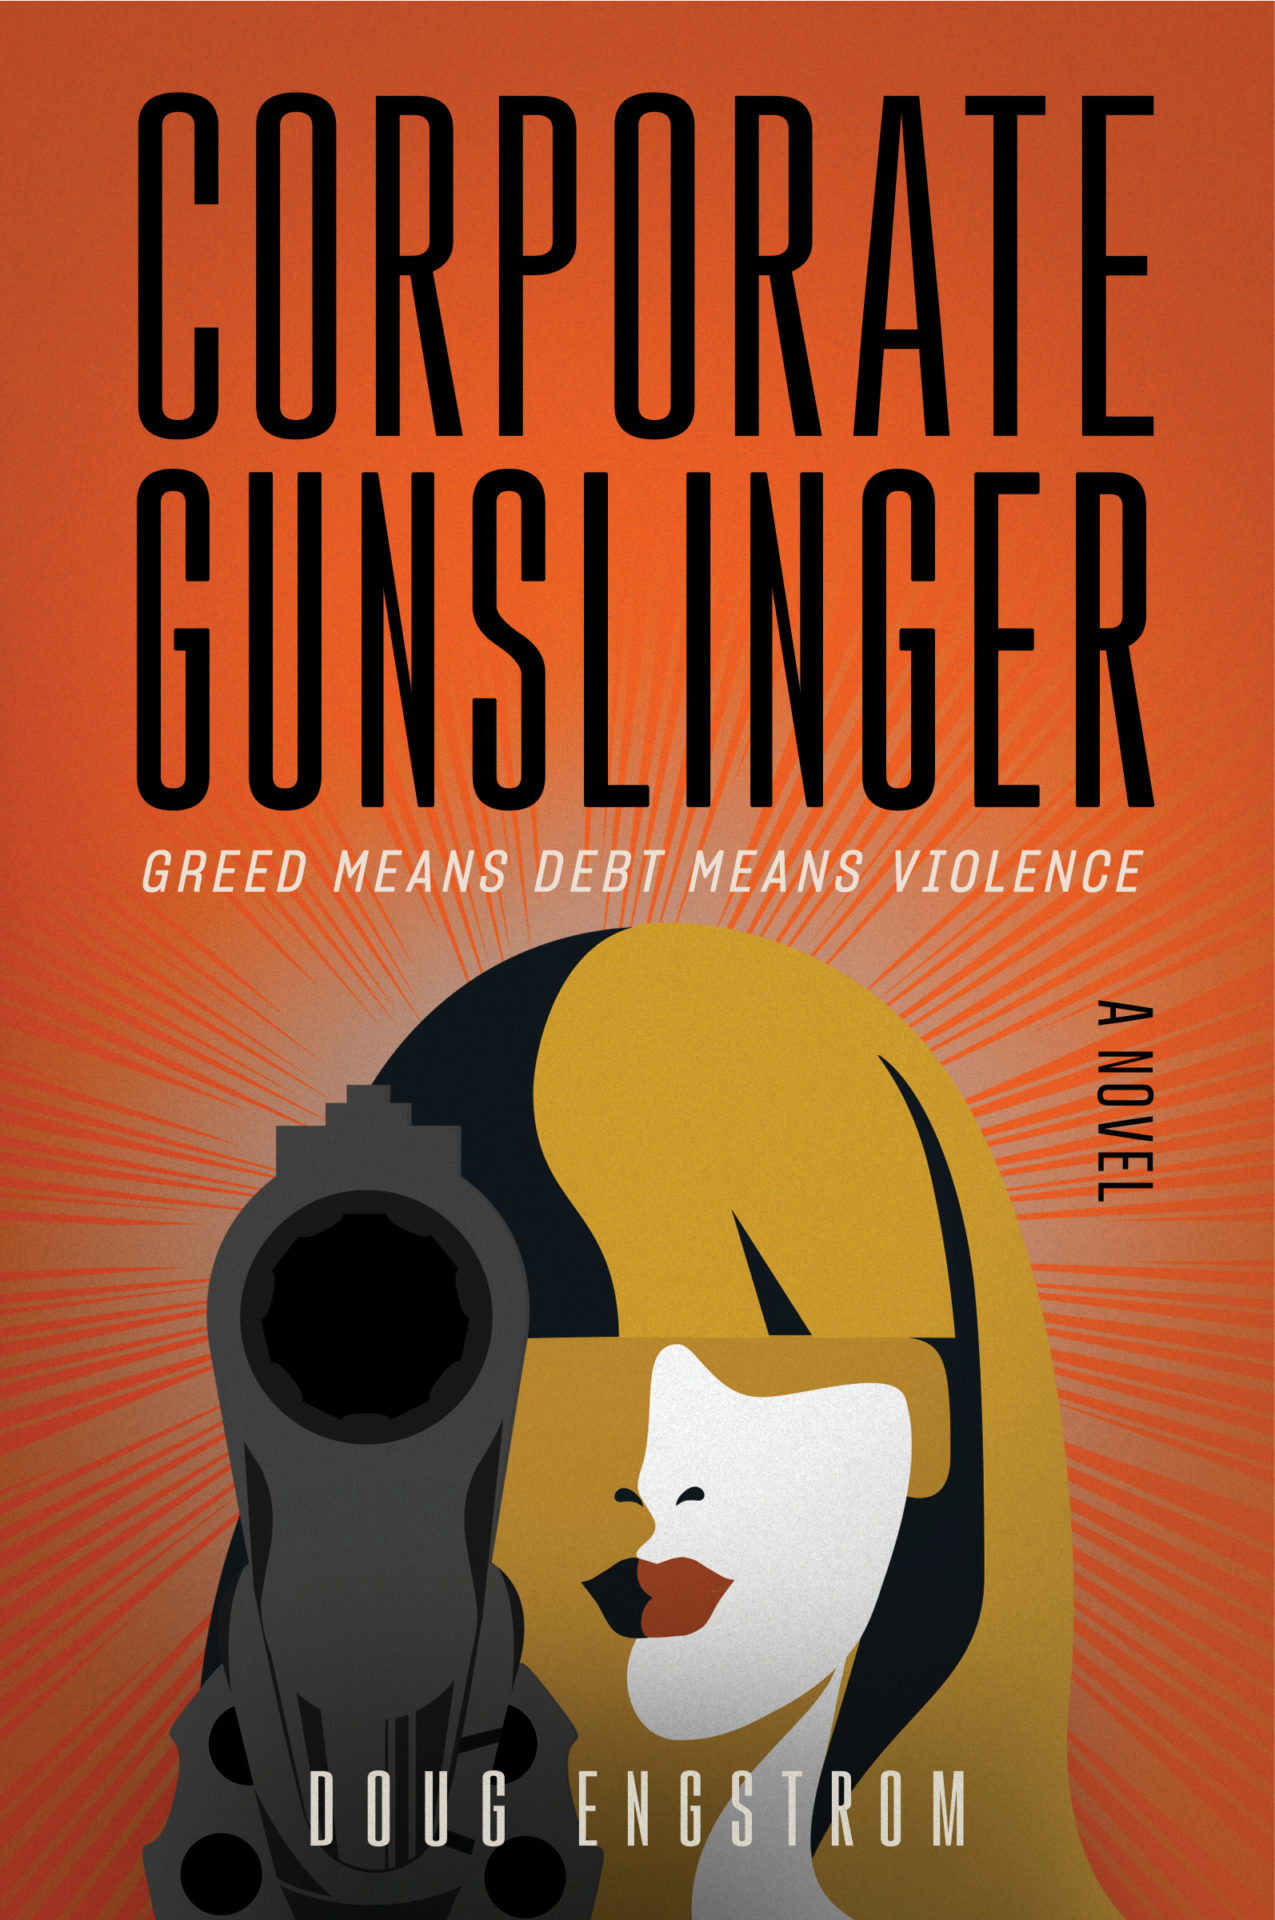 Corporate Gunslinger cover image